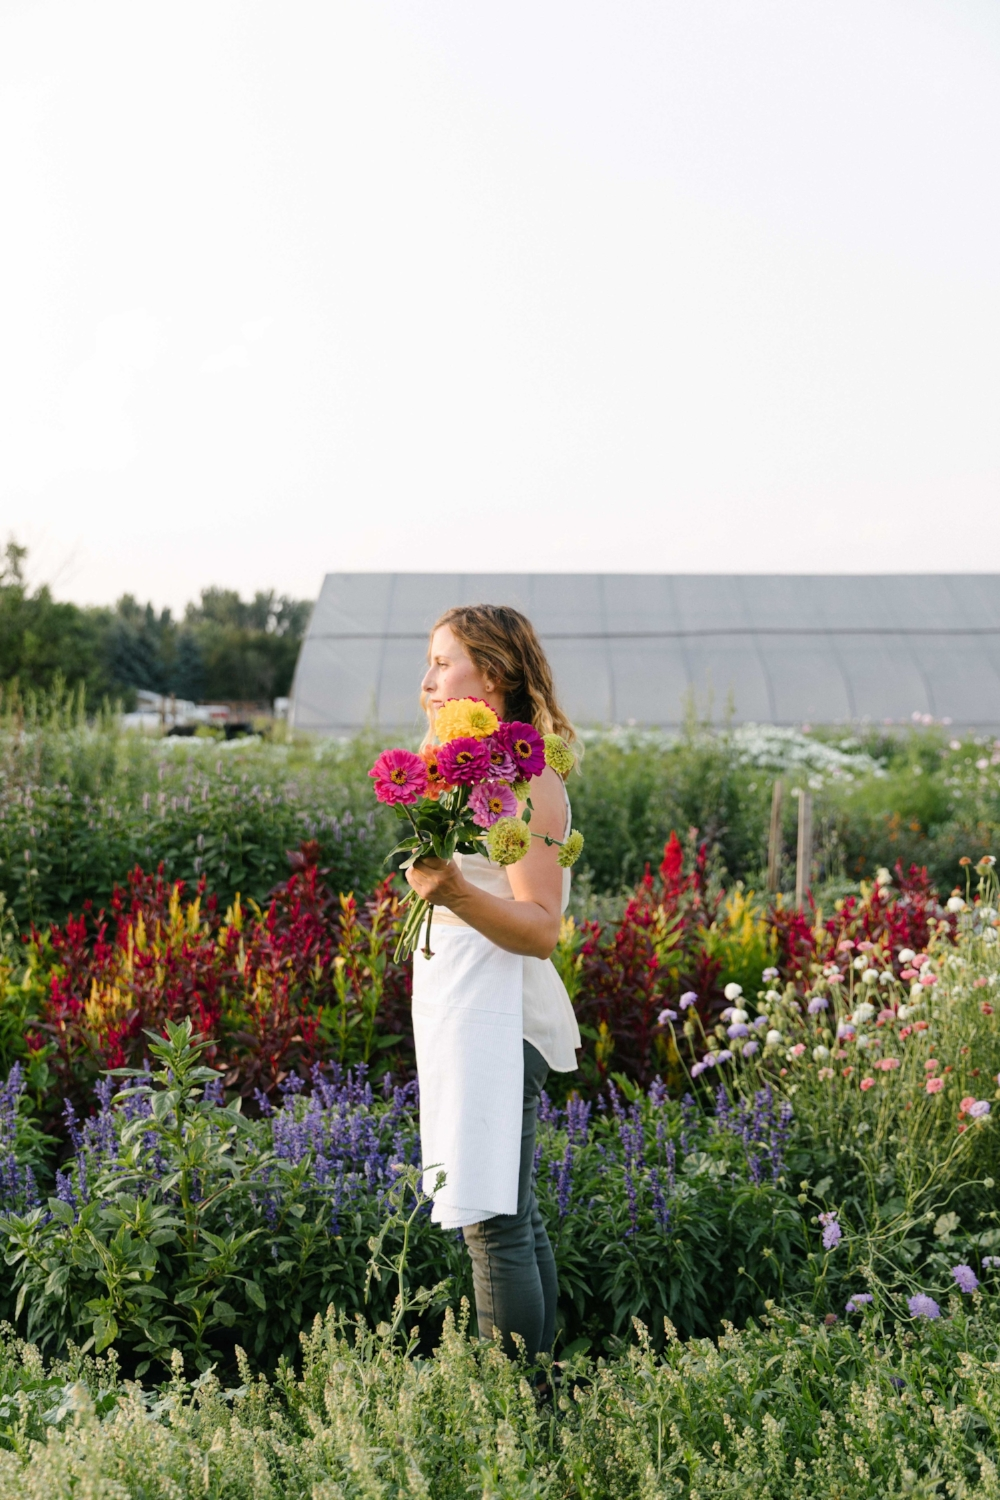 Flowers-Farm-Jimena-Peck-Denver.Editorial.Photography.Lifestyle_Flowers-Native-Hill-Farm-Fort-Collins-1828.jpg